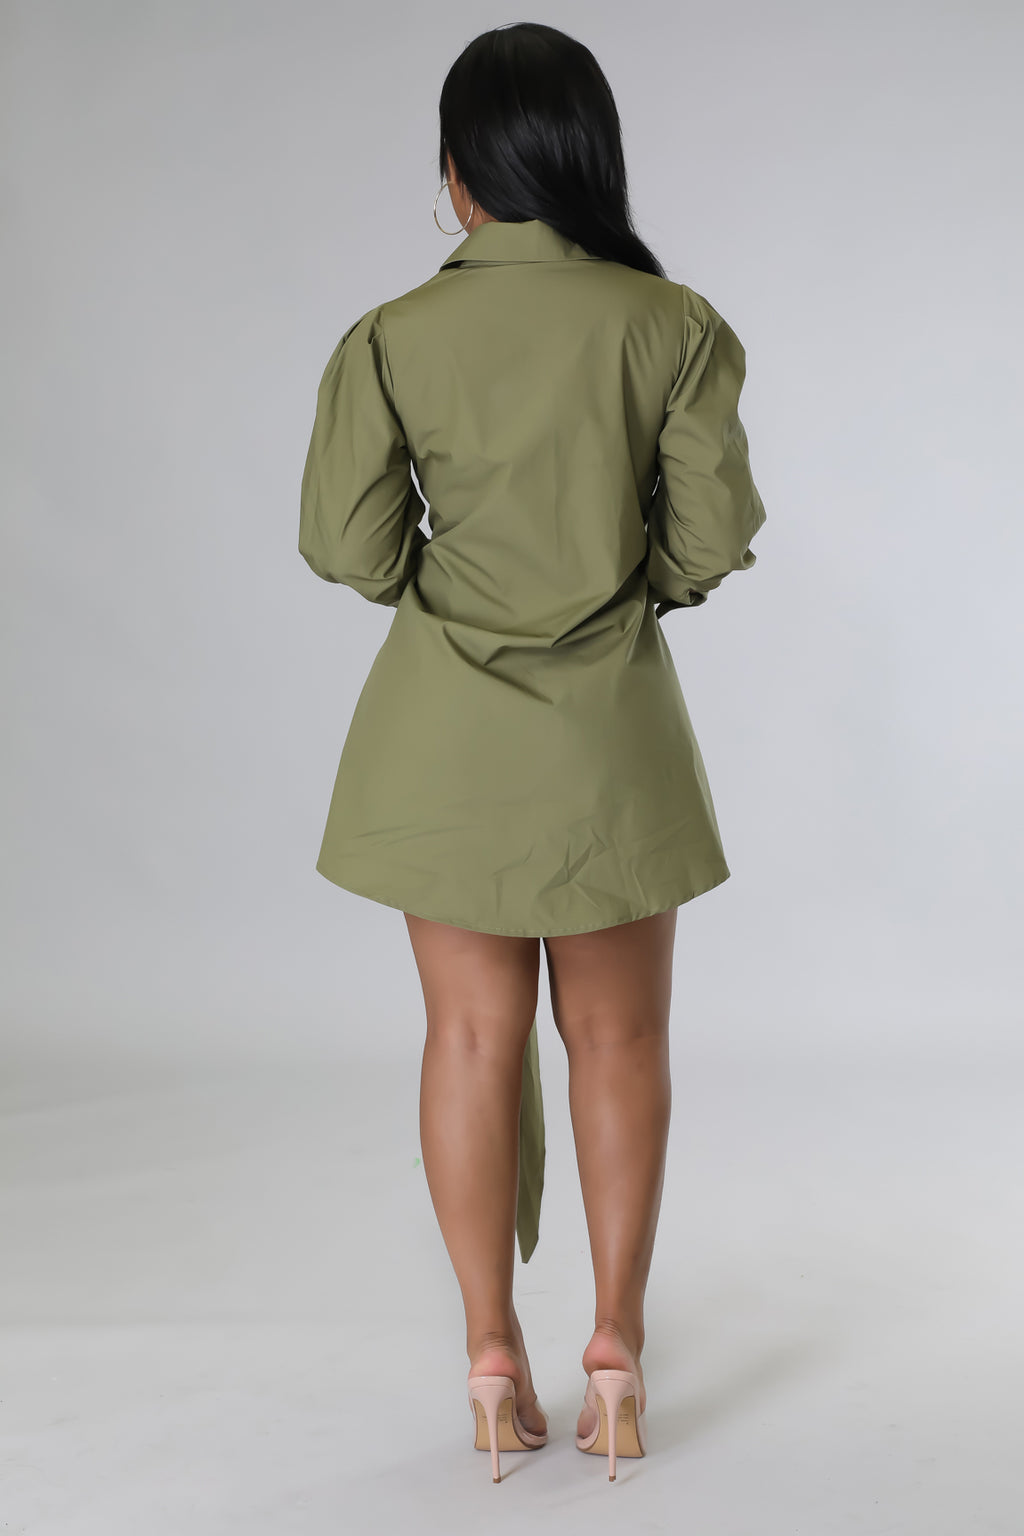 Neon Slip On Sneakers